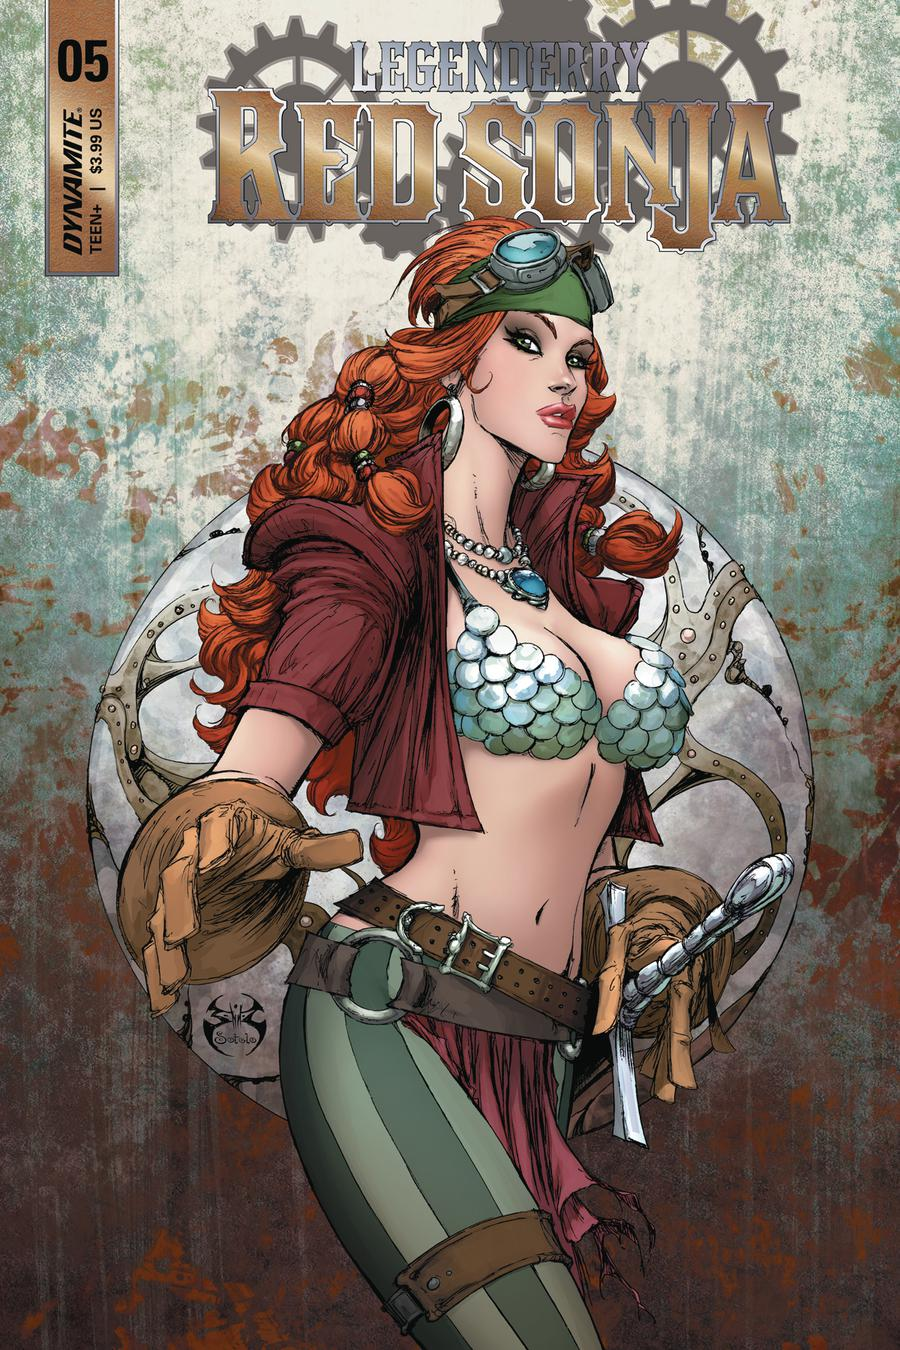 Legenderry Red Sonja Vol 2 #5 Cover A Regular Joe Benitez Cover